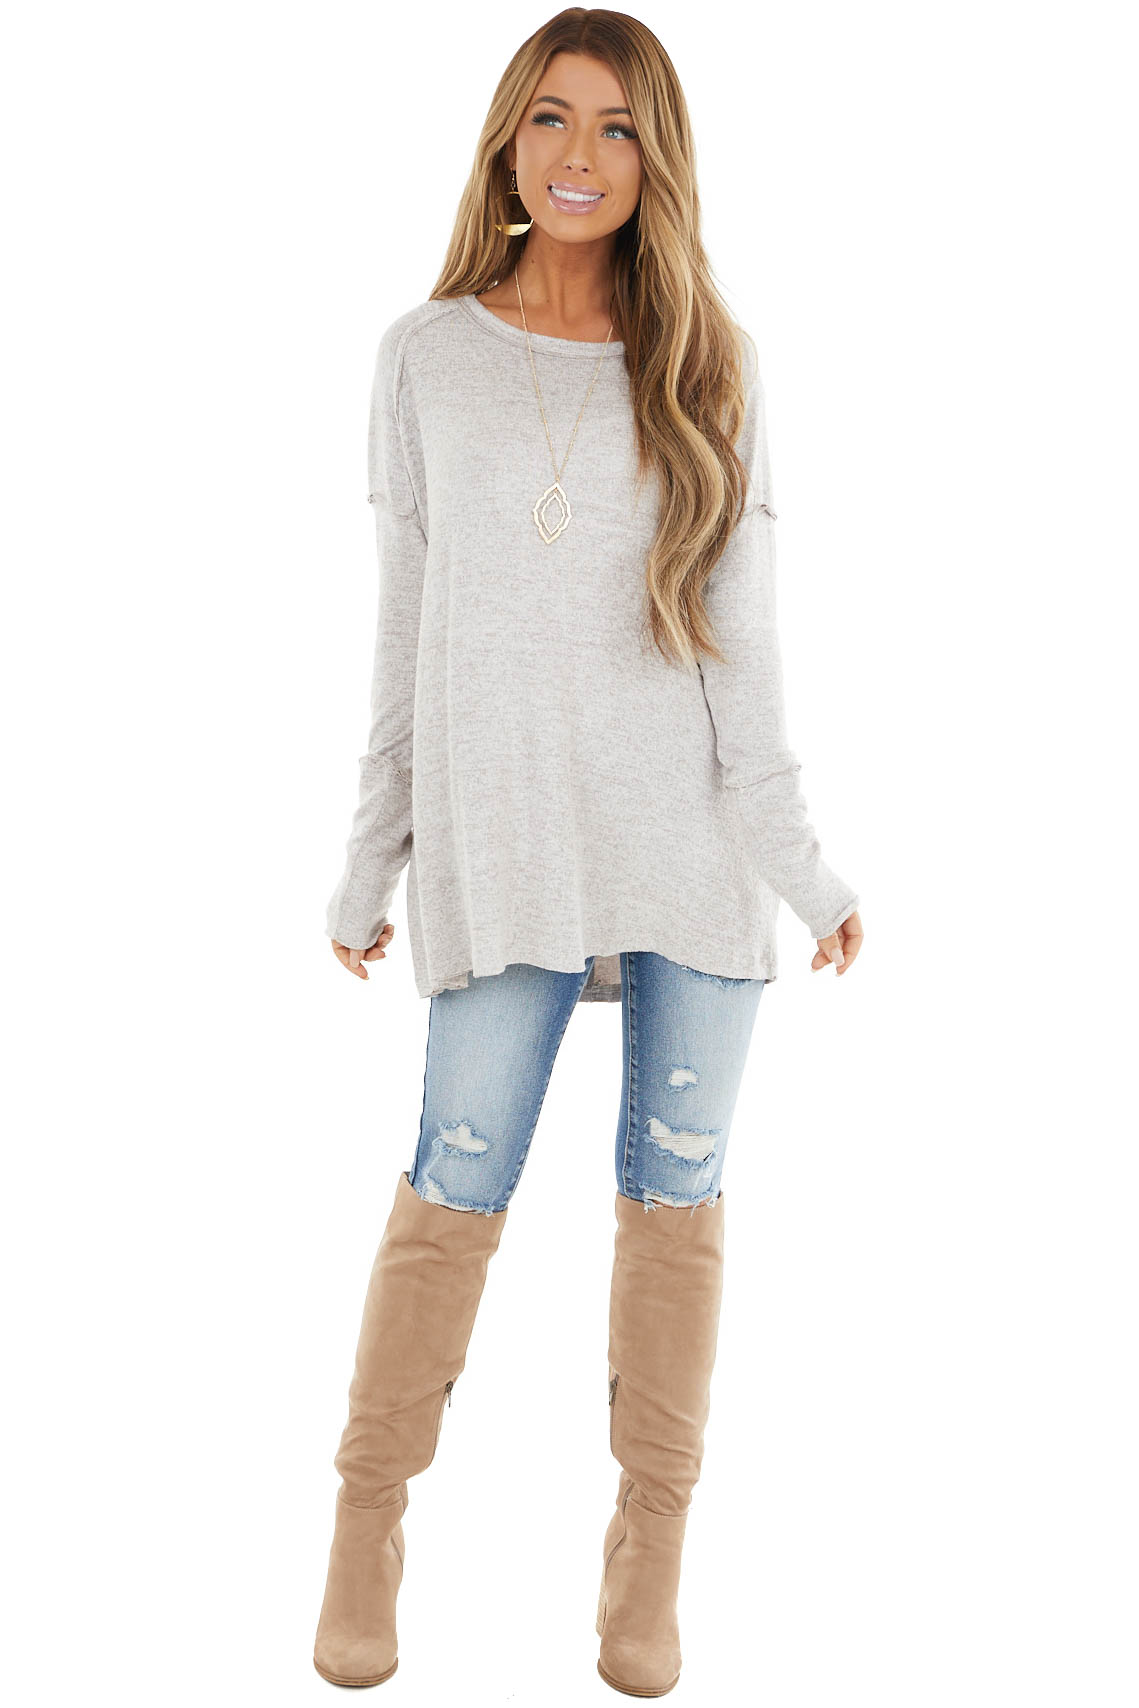 Latte Two Tone Fuzzy Stretchy Knit Top with Raw Edge Details